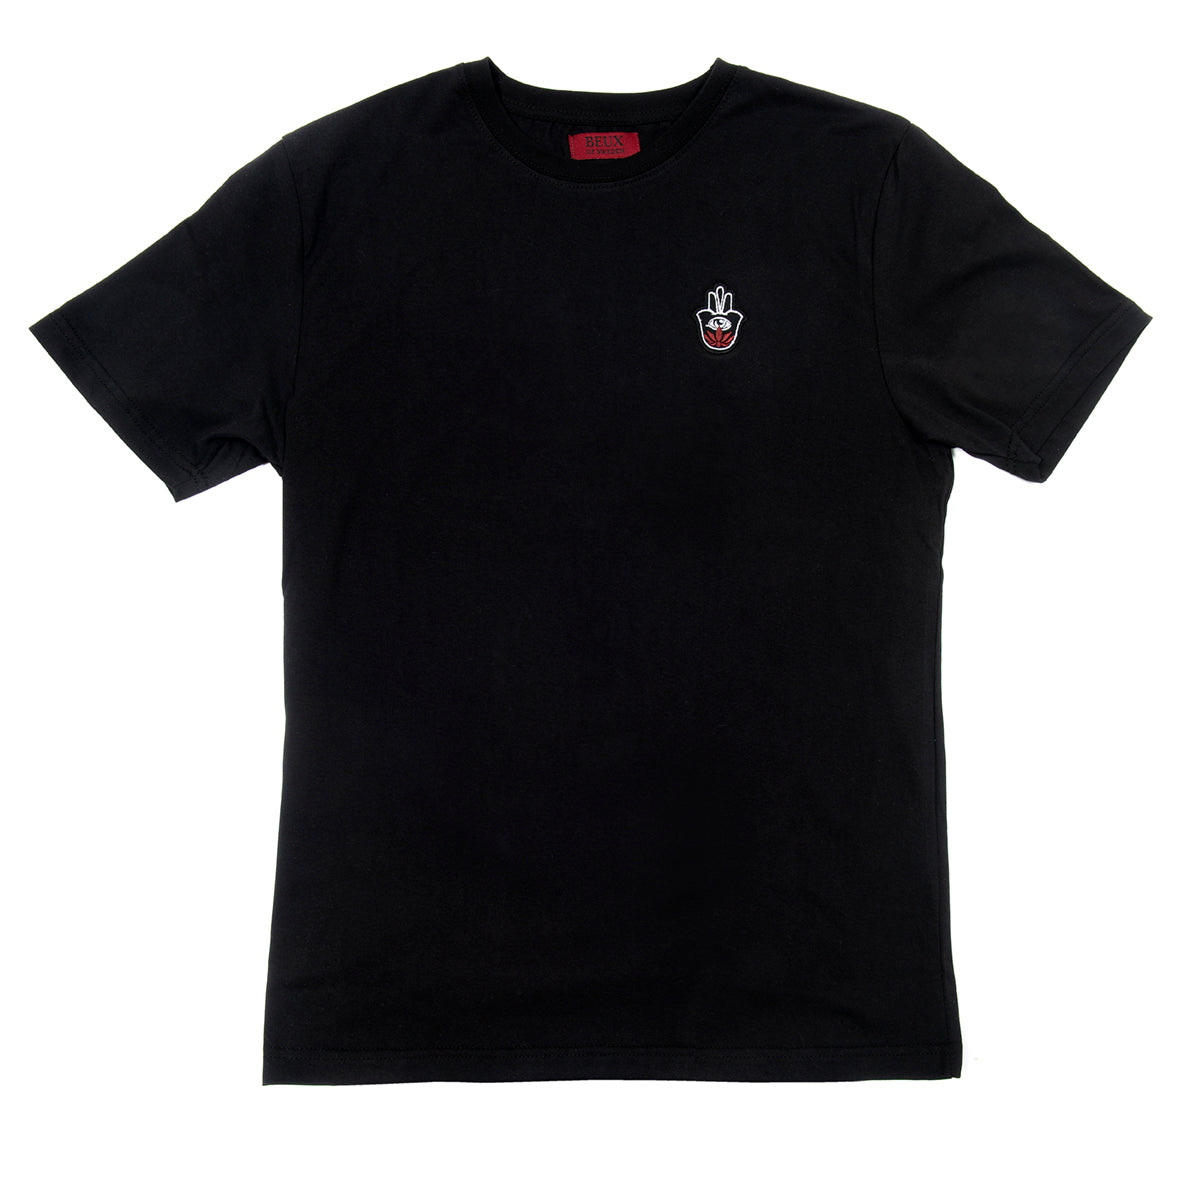 Black T-shirt with embroidered logo